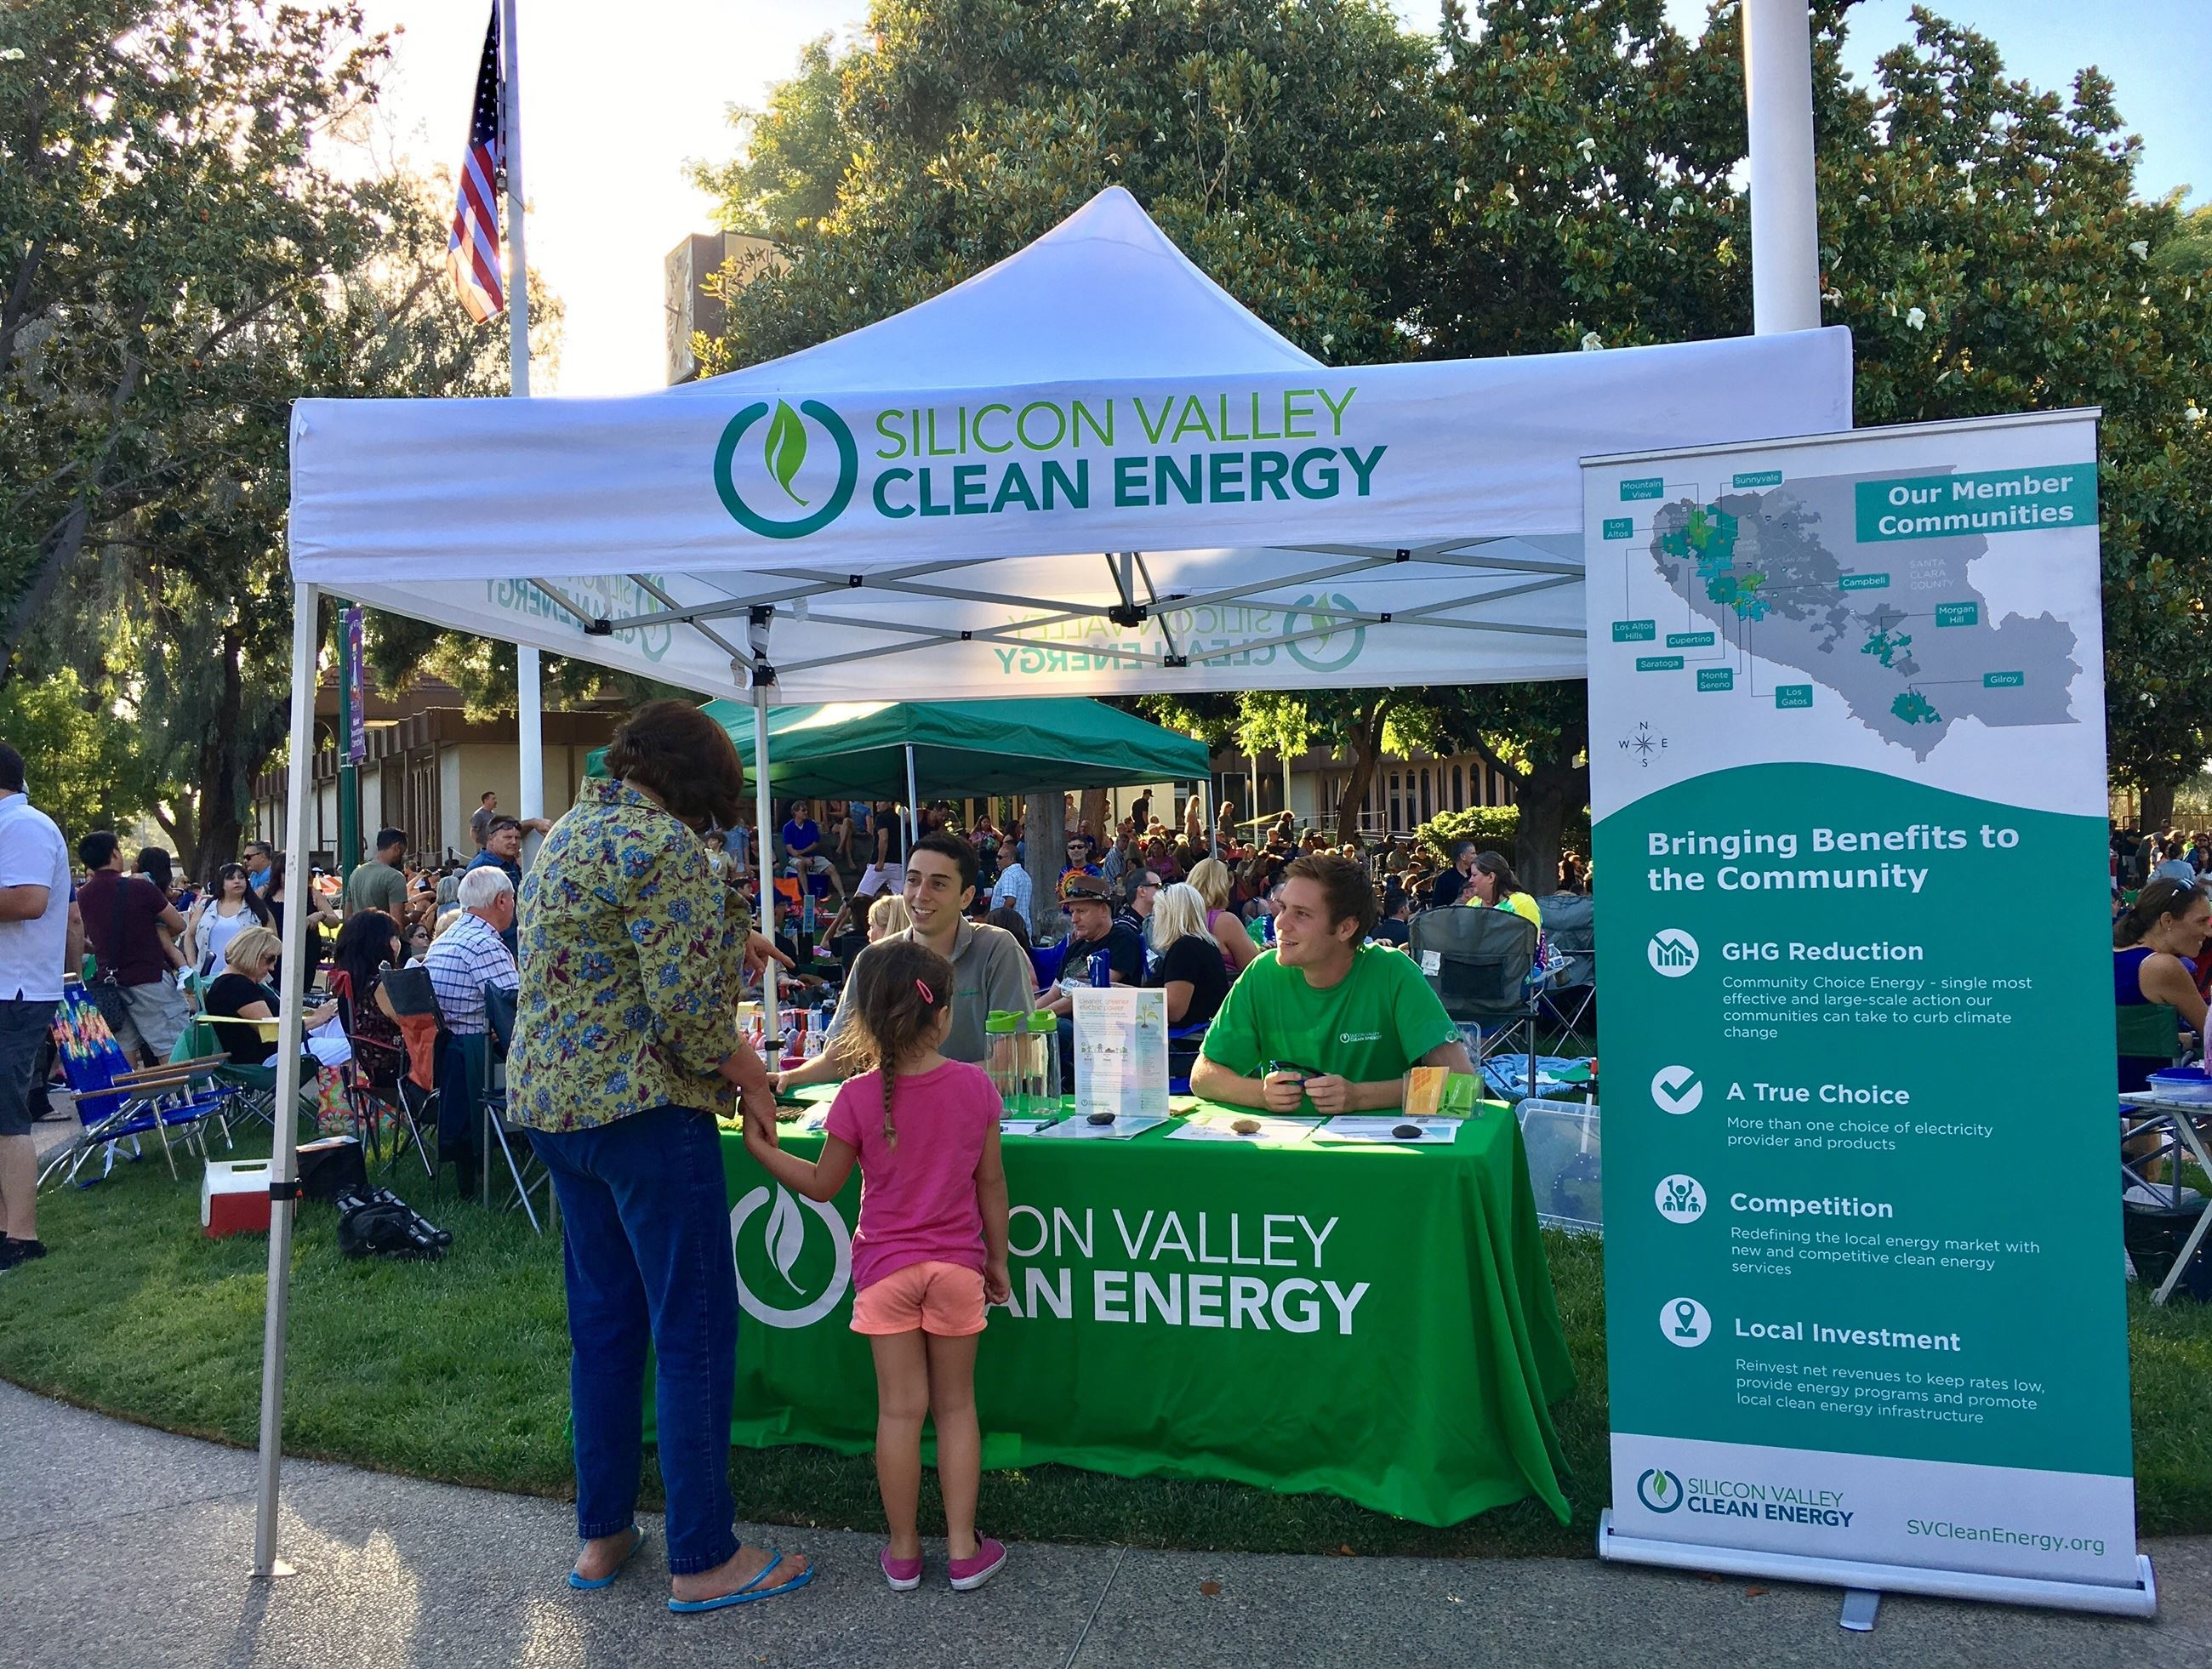 Silicon Valley Clean Energy at a Campbell community event.